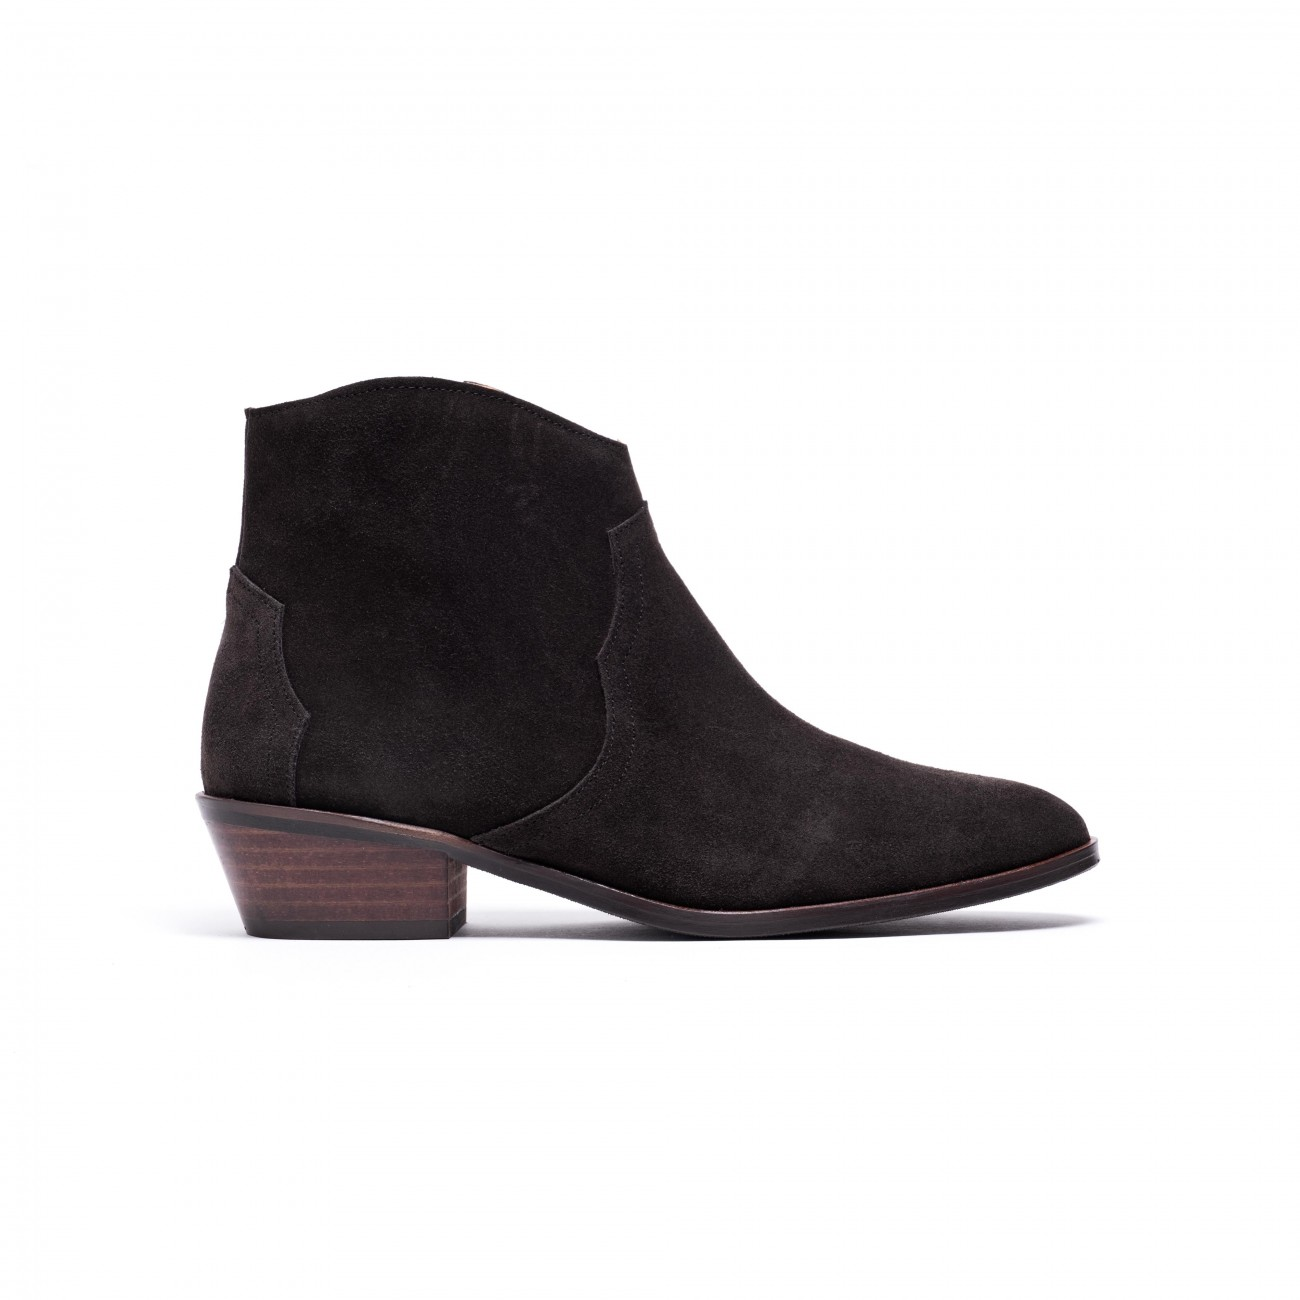 Fiona Coffee Brown Suede